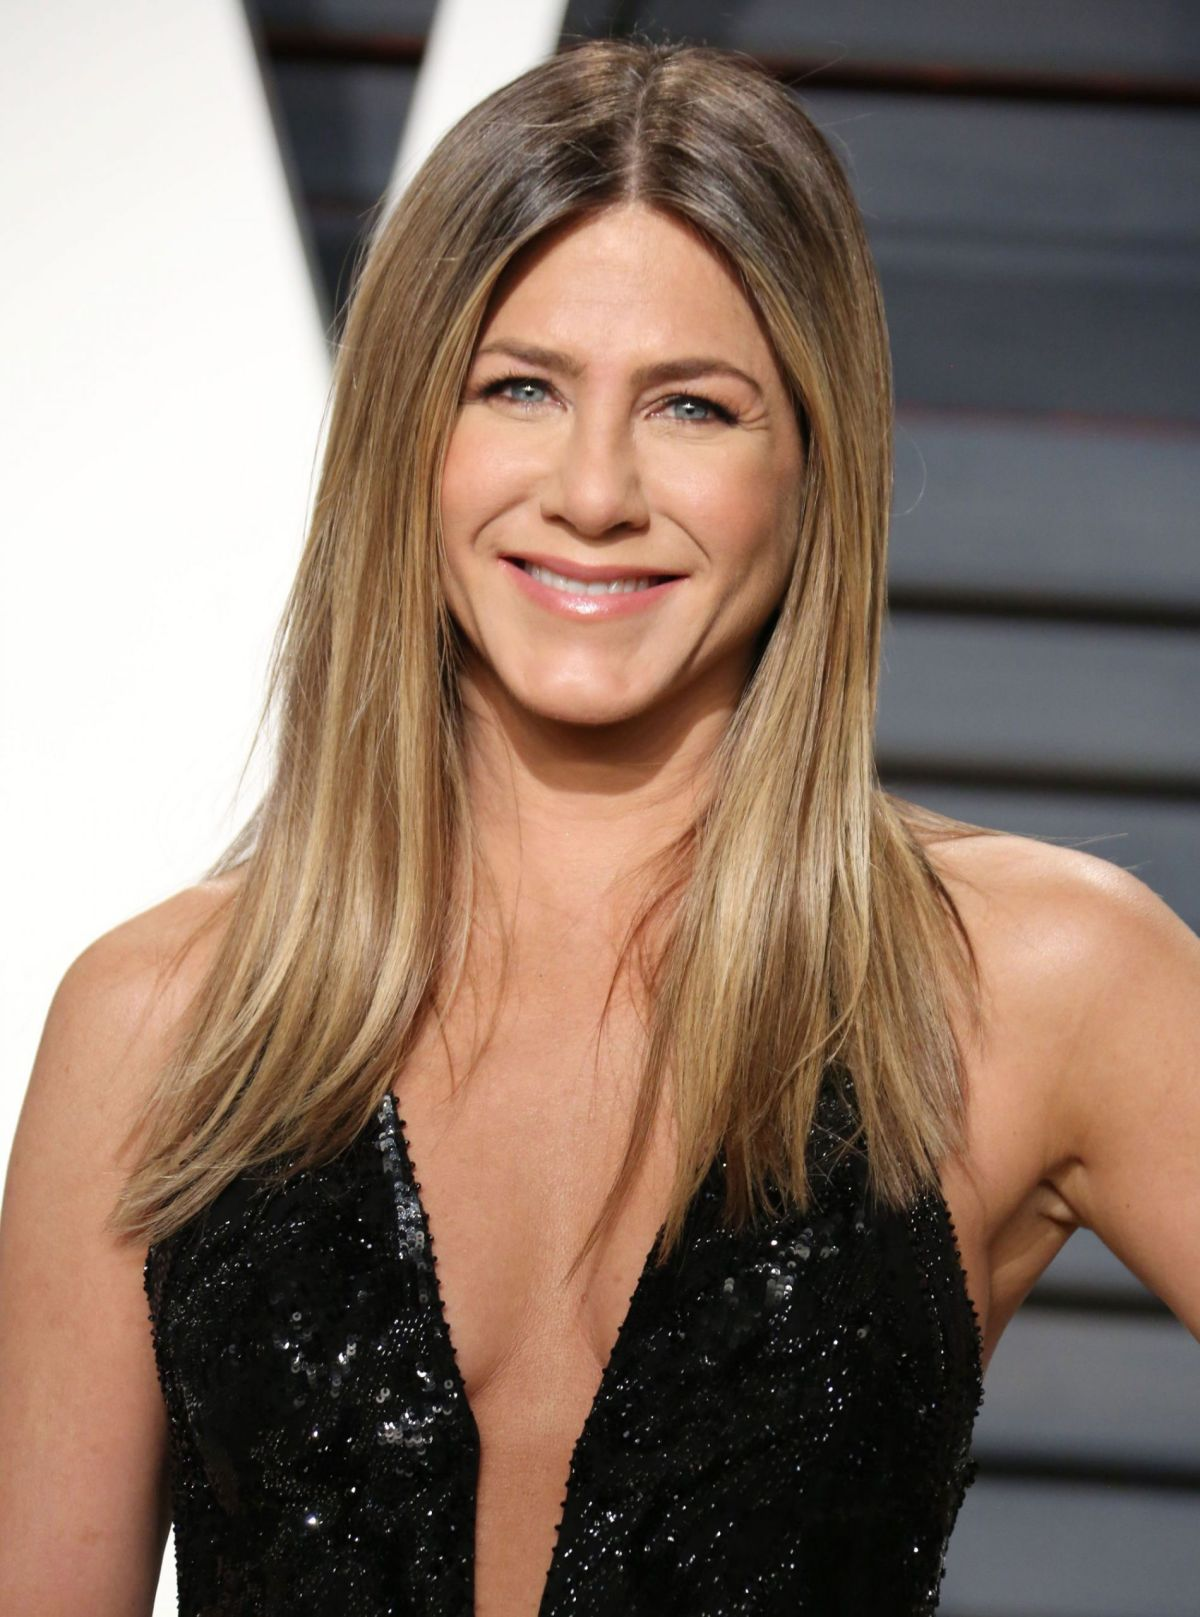 These are the best budget beauty buys Jennifer Aniston loves for radiant skin and shiny hair